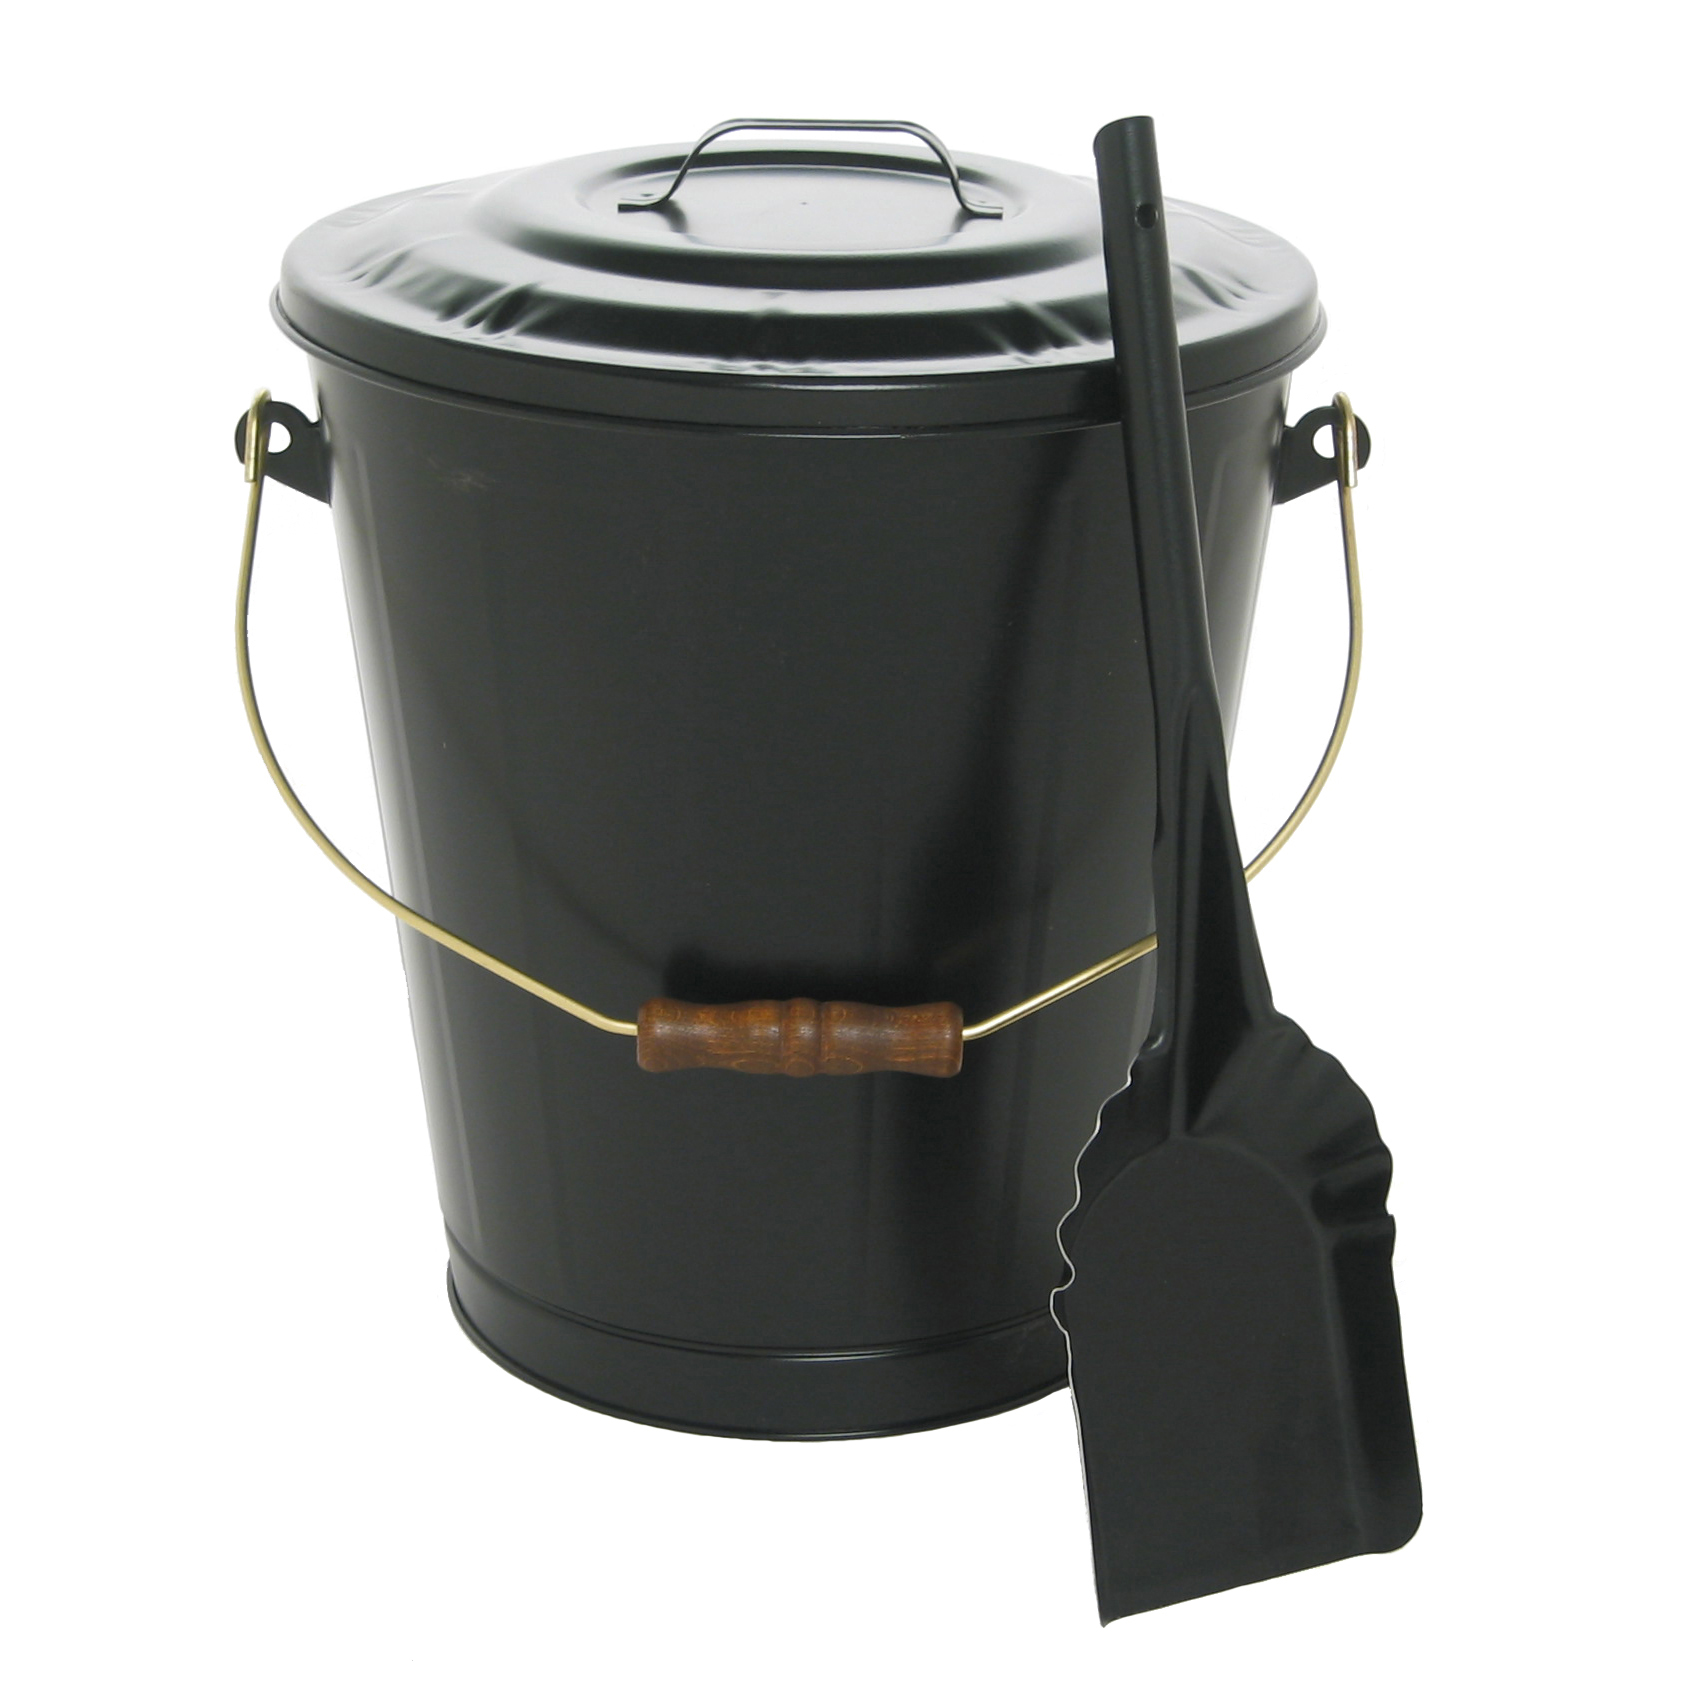 Imperial Manufacturing Ash Container Amp Shovel Set Black